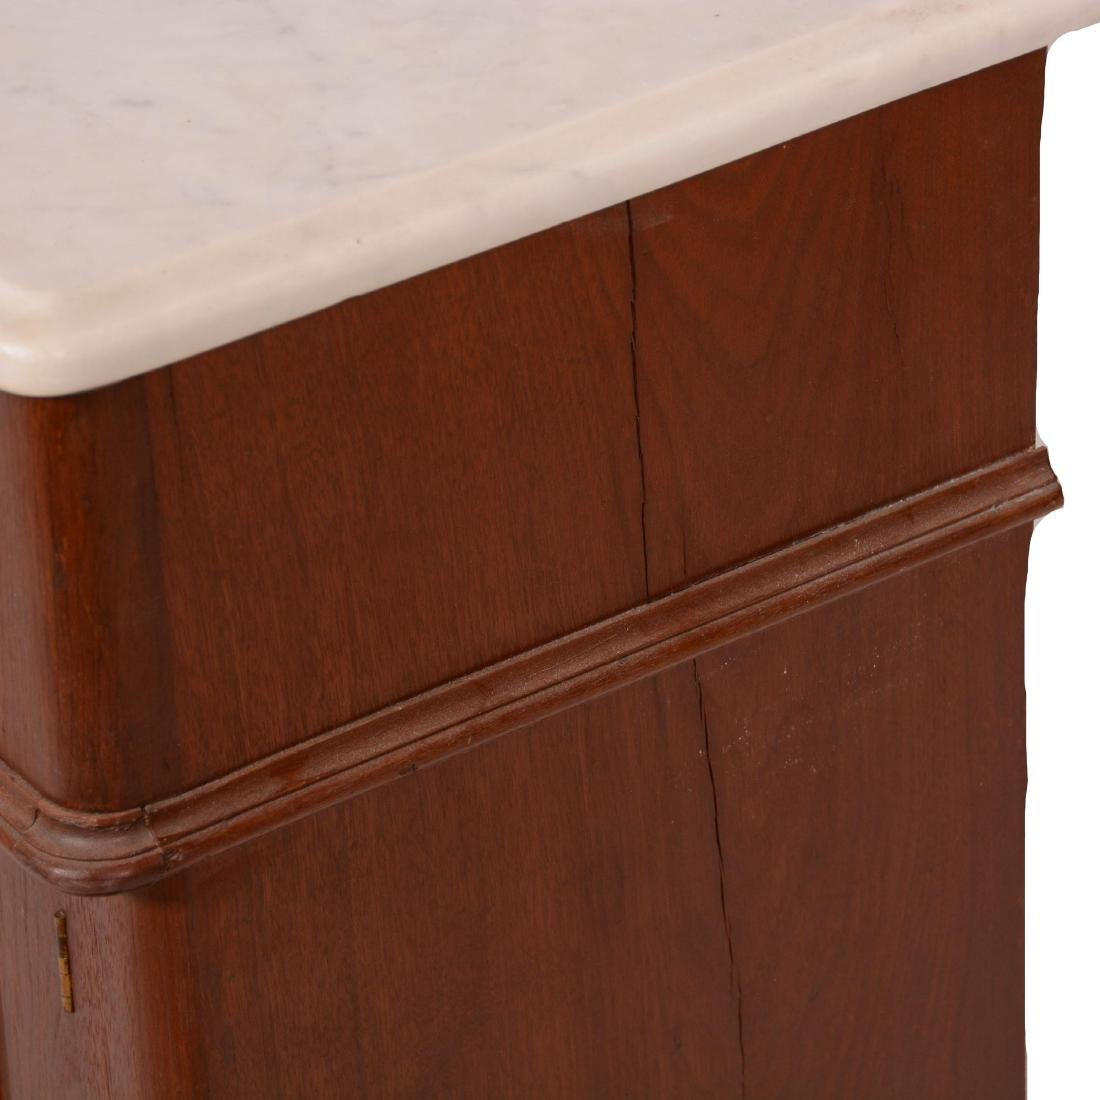 Walnut Commode with White Marble Top and Backsplash - 2